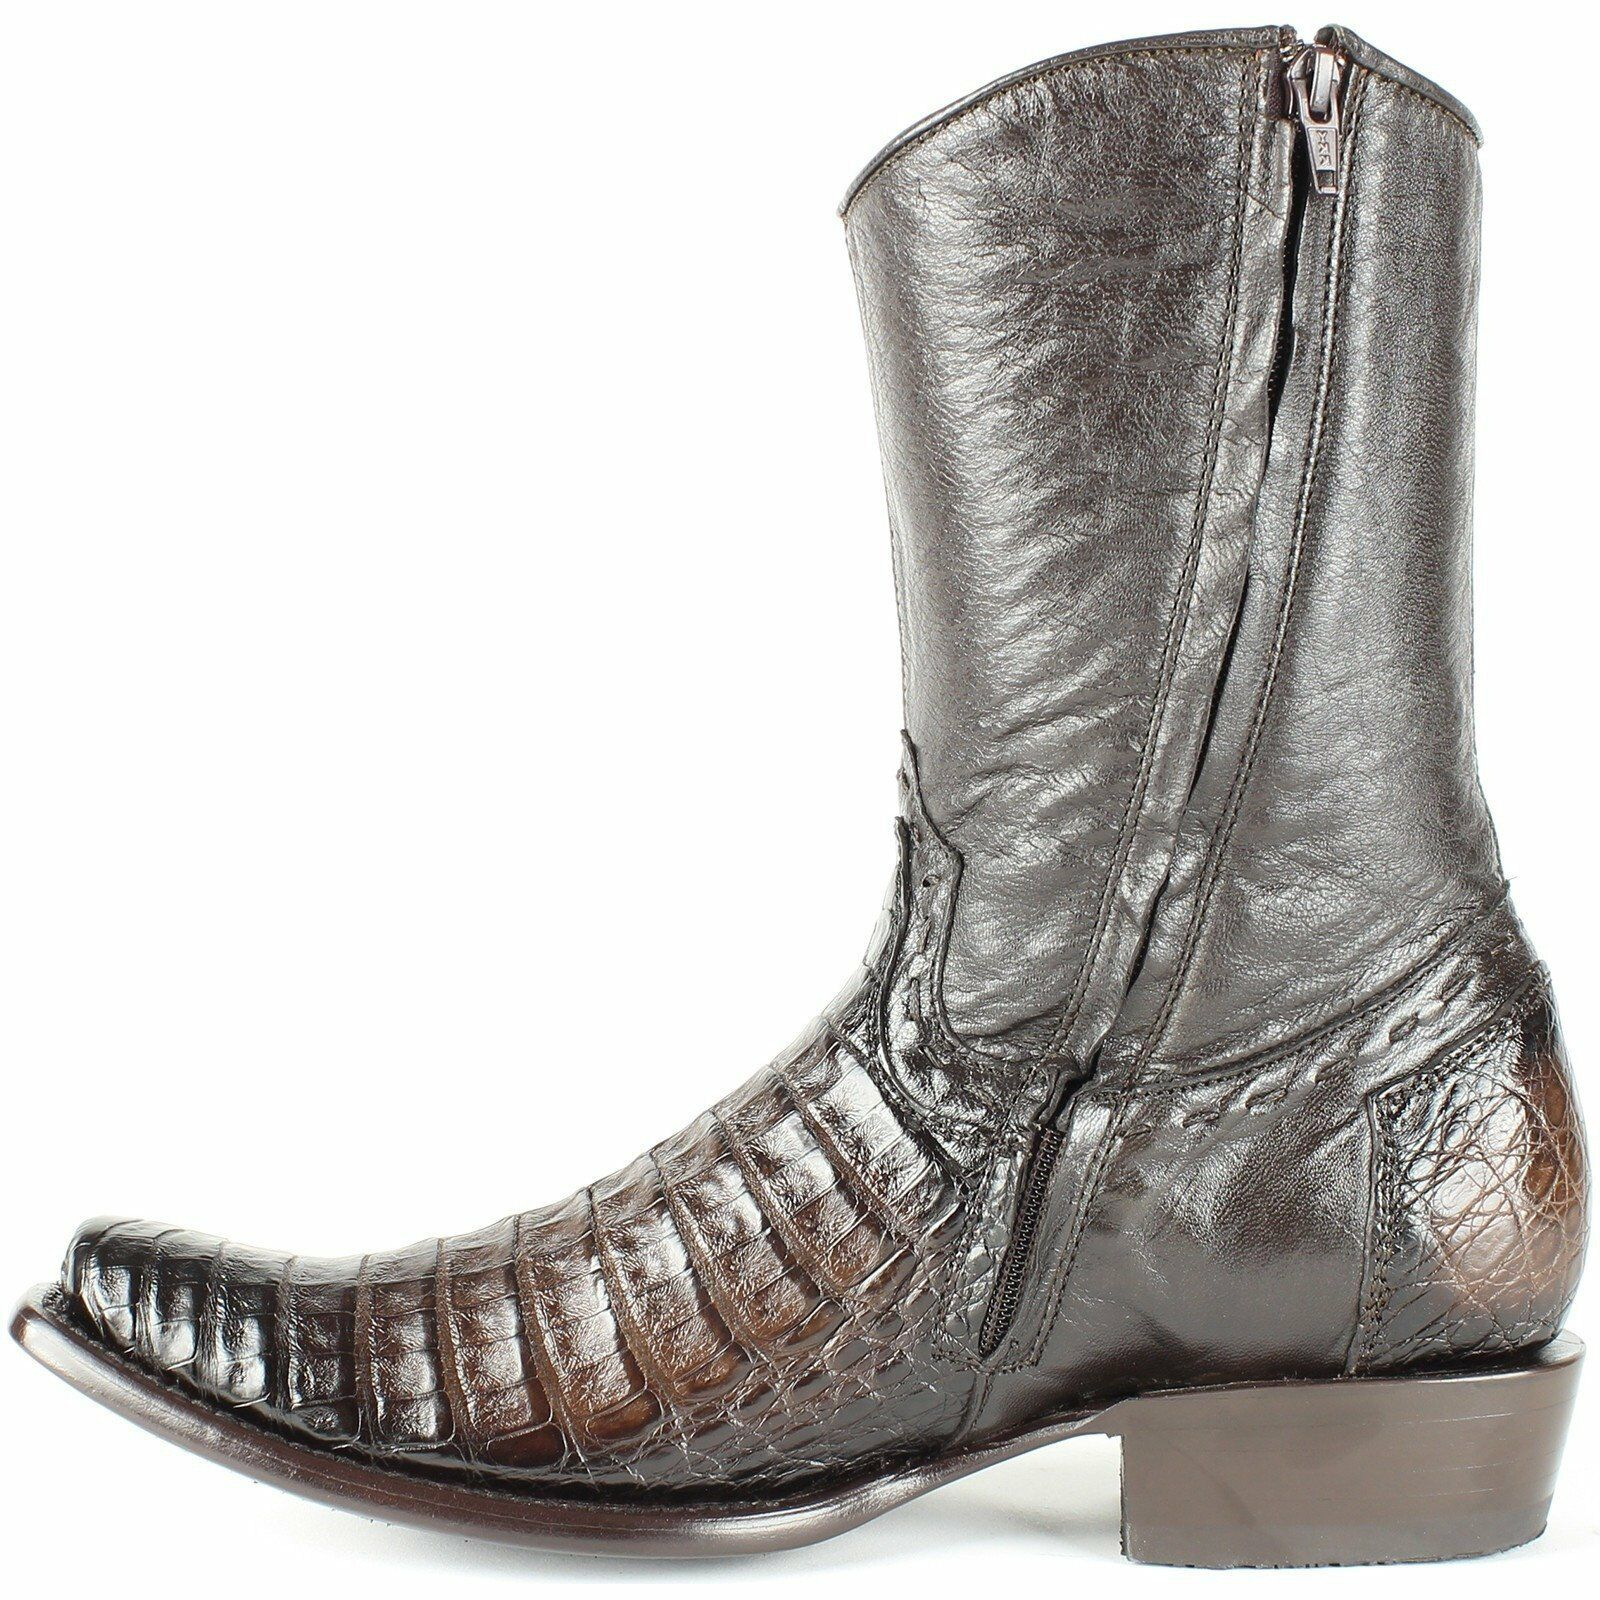 King Exotic Brown Caiman Cocodile Belly Belly Cocodile Western Boot Side Zipper Mid Calf D ecf9c4